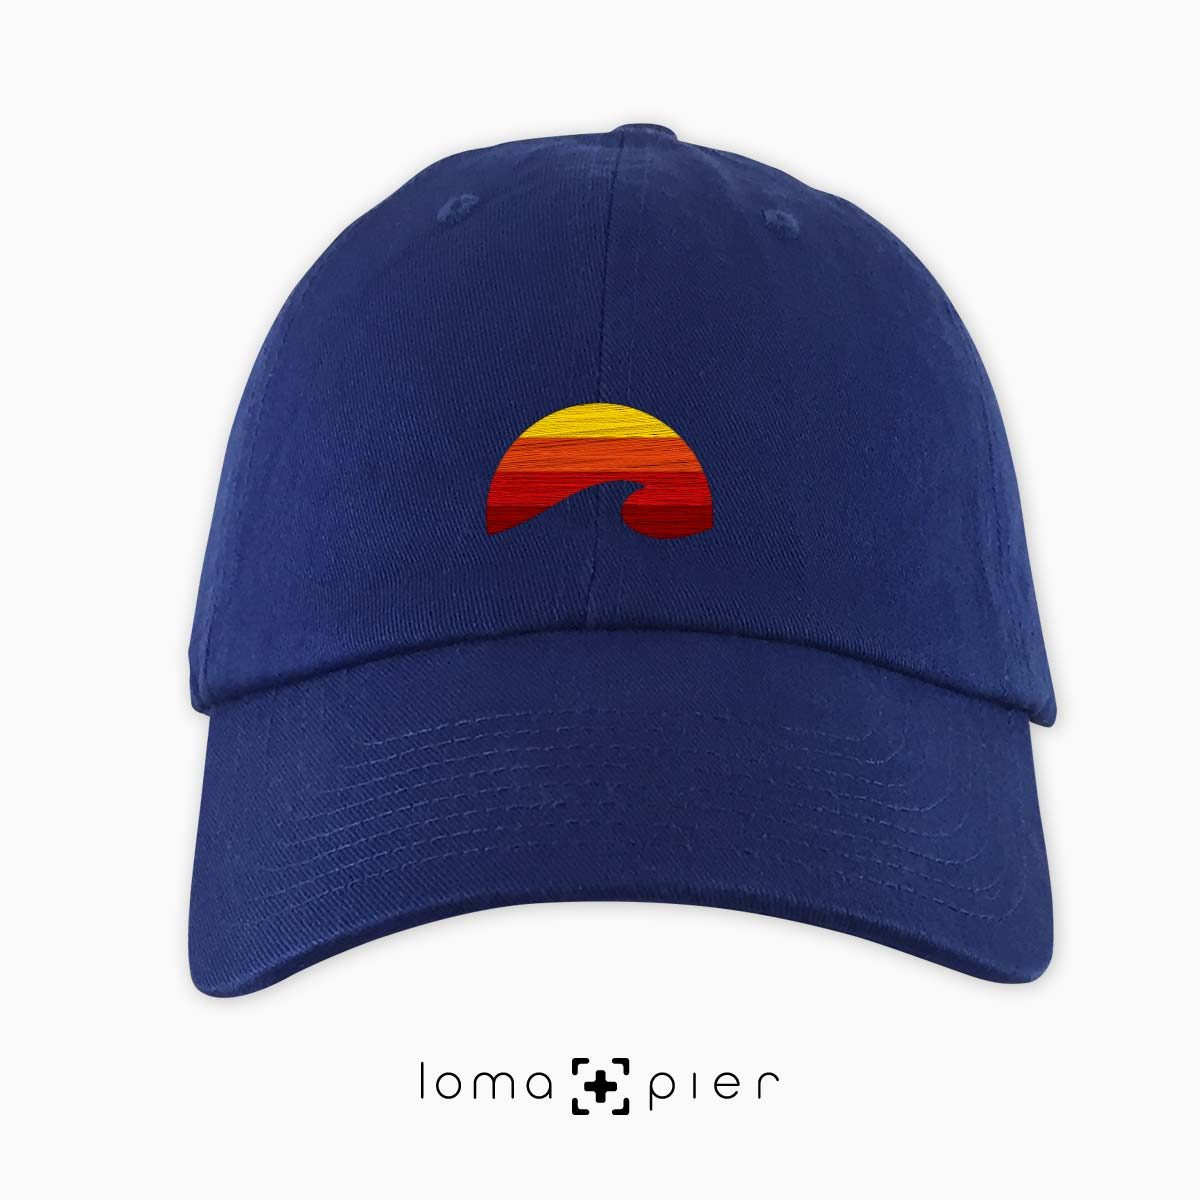 PACIFIC SUN icon embroidered on a royal blue dad hat by loma+pier hat store made in the USA